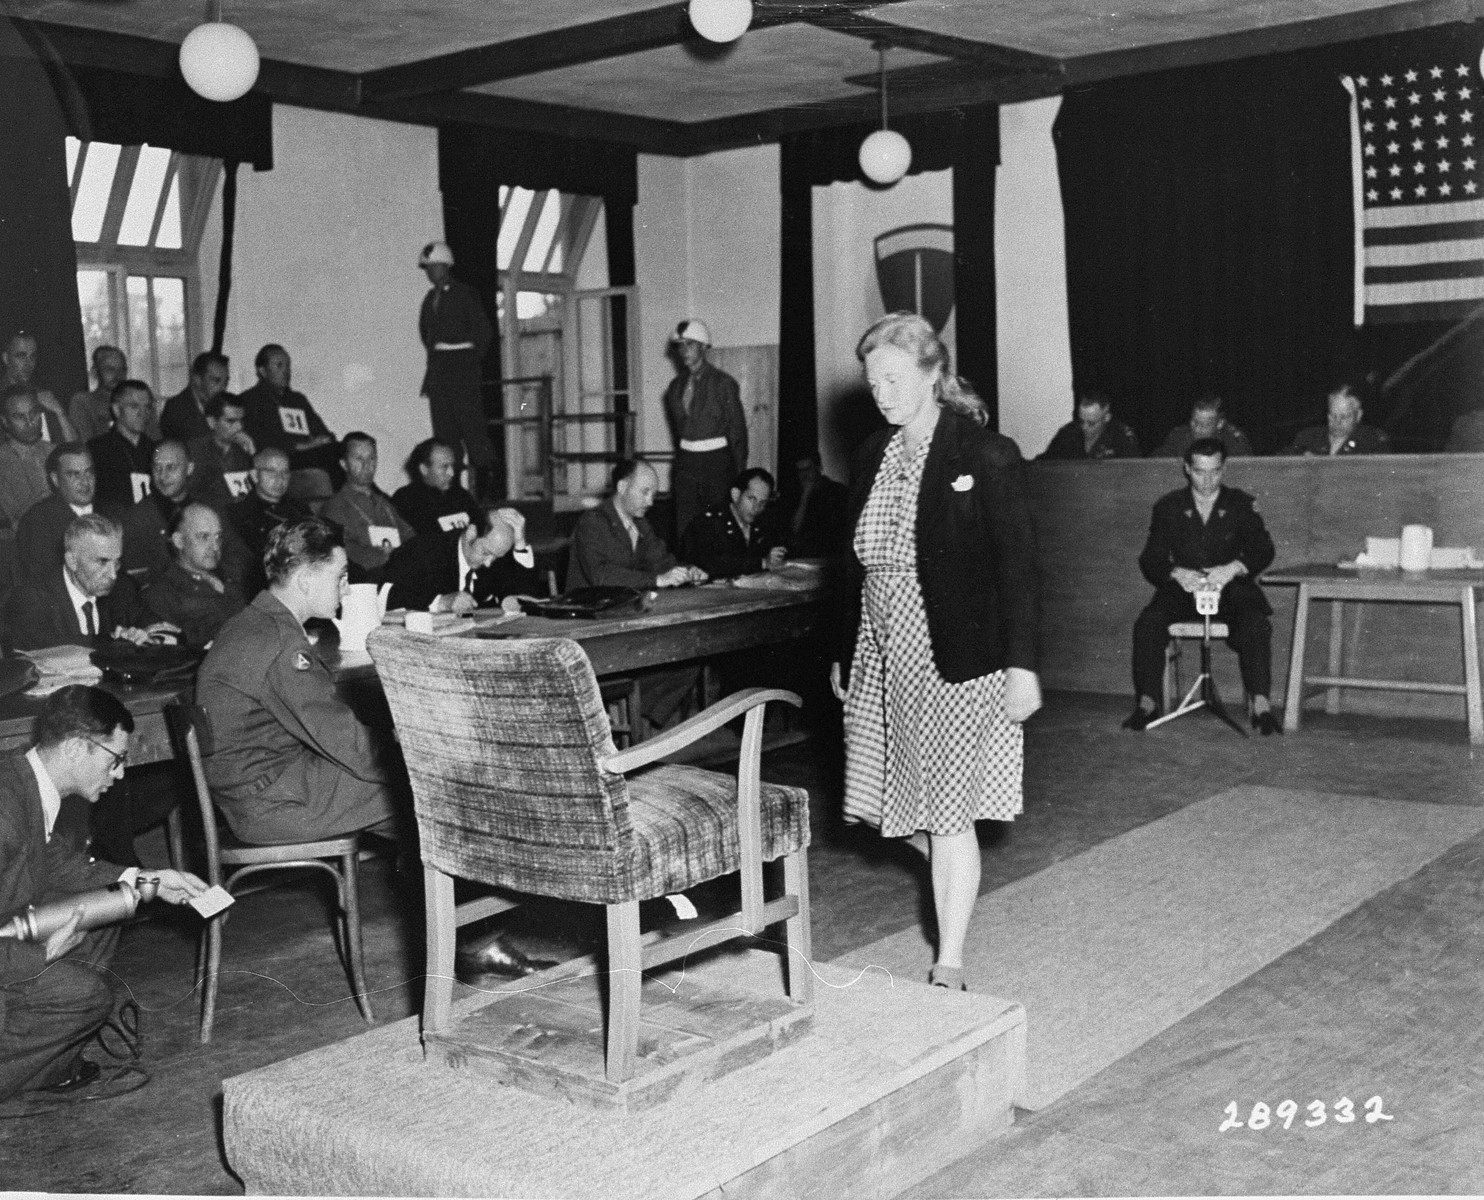 Ilse Koch takes the stand for her final statement at the trial of 31 former camp personnel and prisoners from Buchenwald.